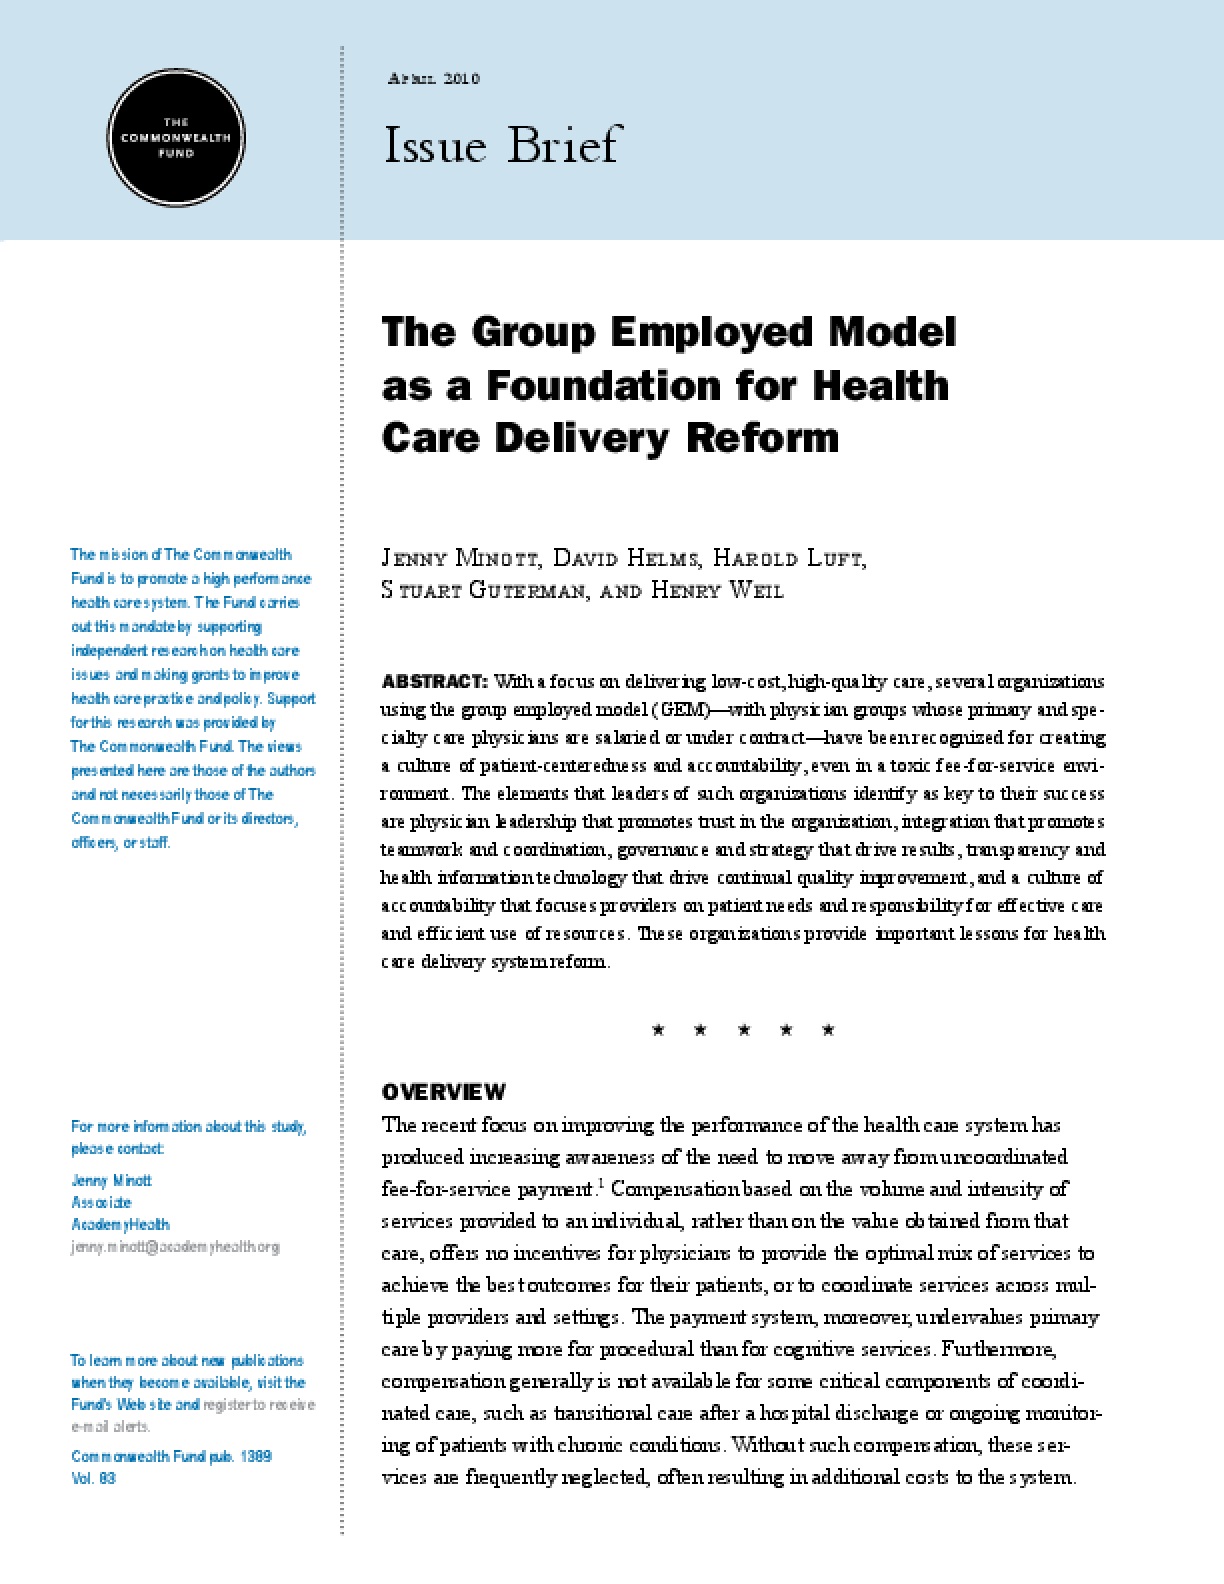 The Group Employed Model as a Foundation for Health Care Delivery Reform